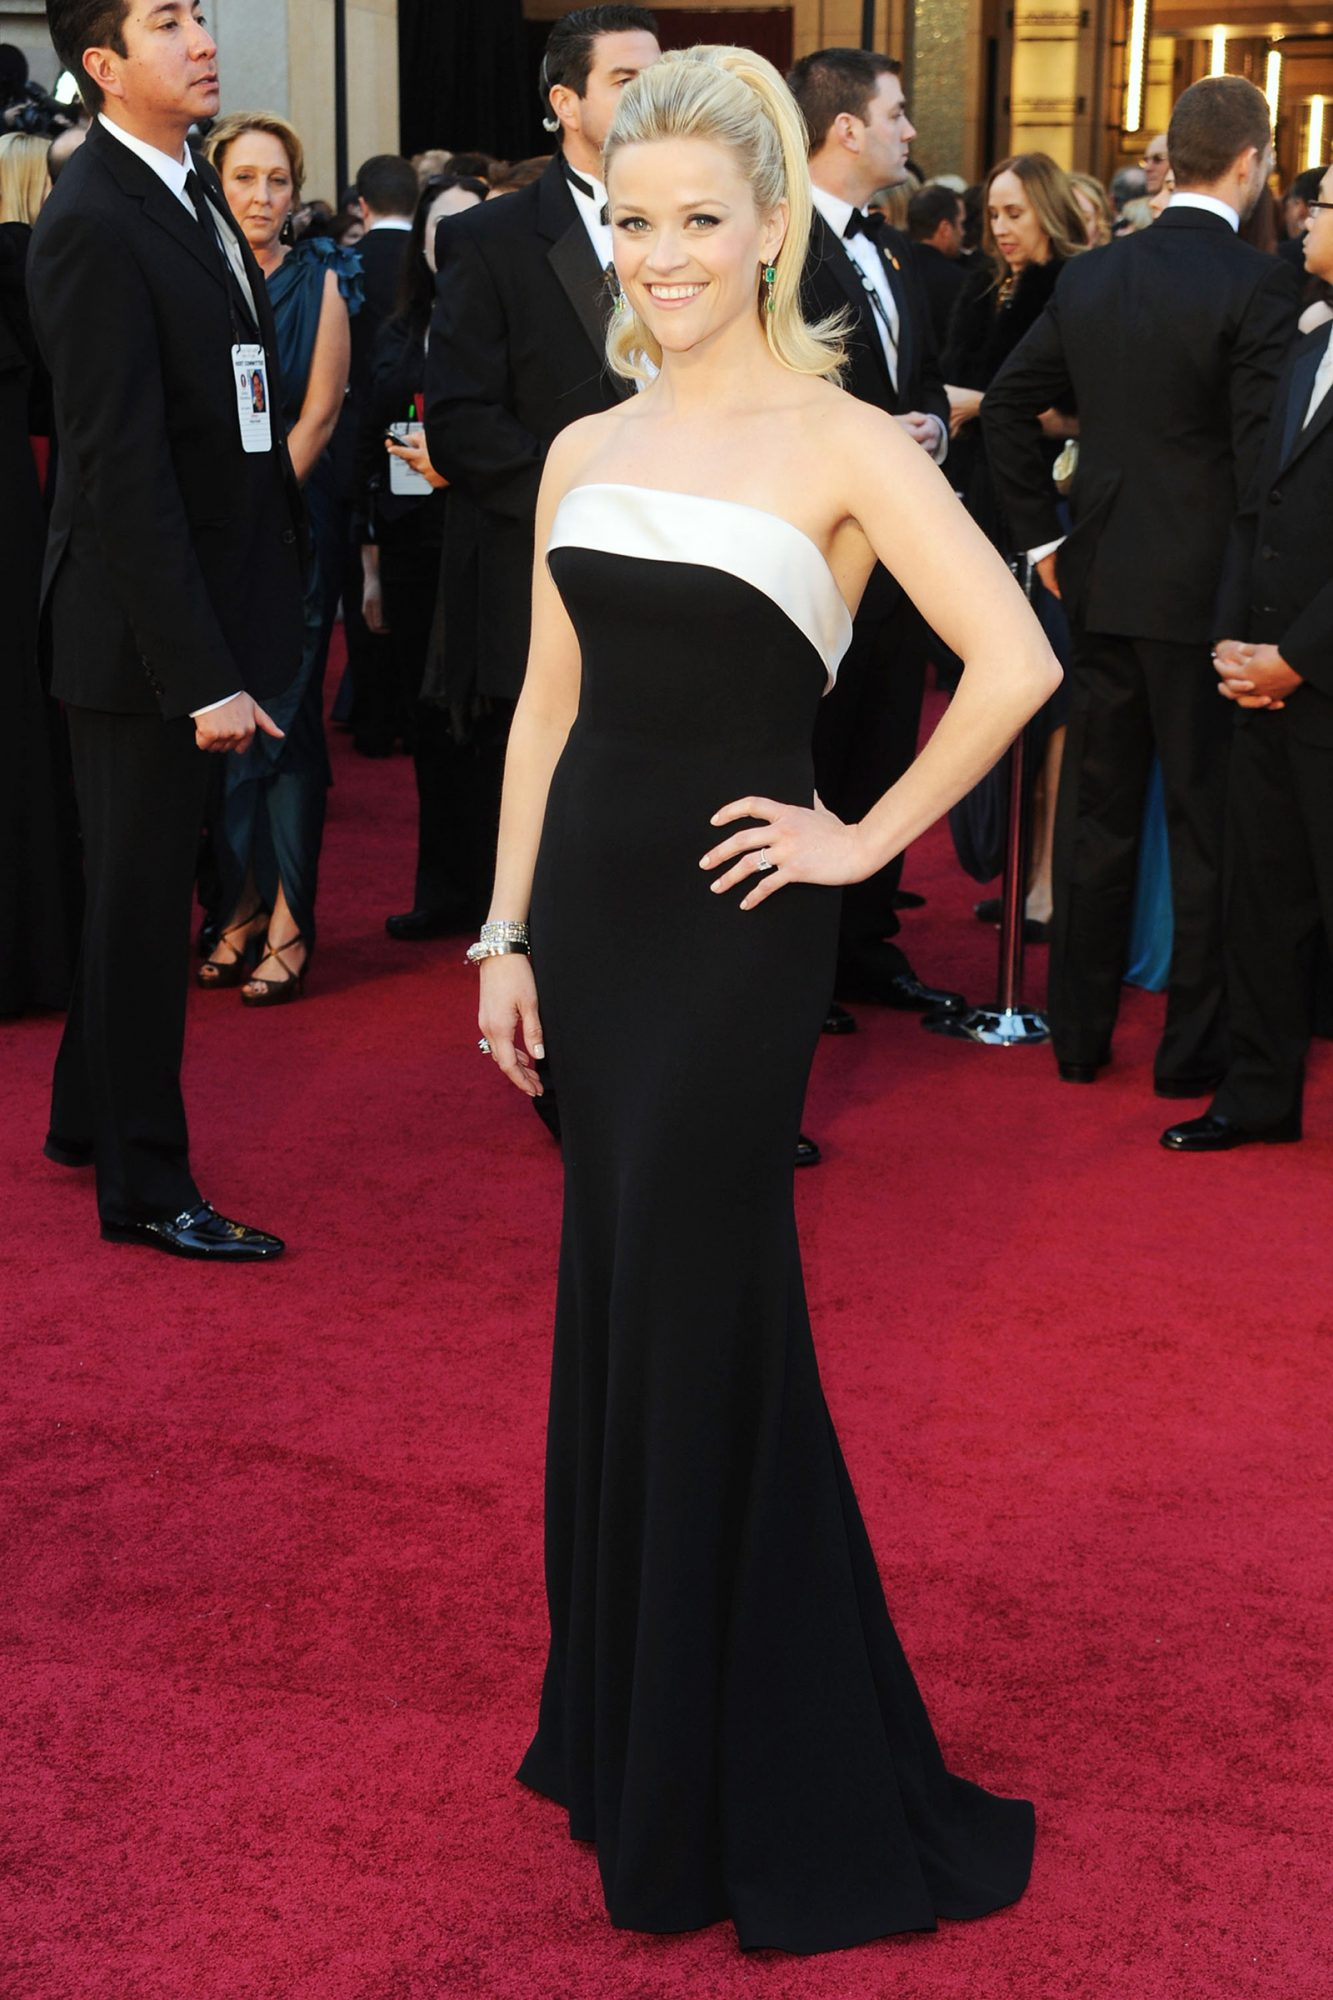 2011 Academy Awards, Reese Witherspoon